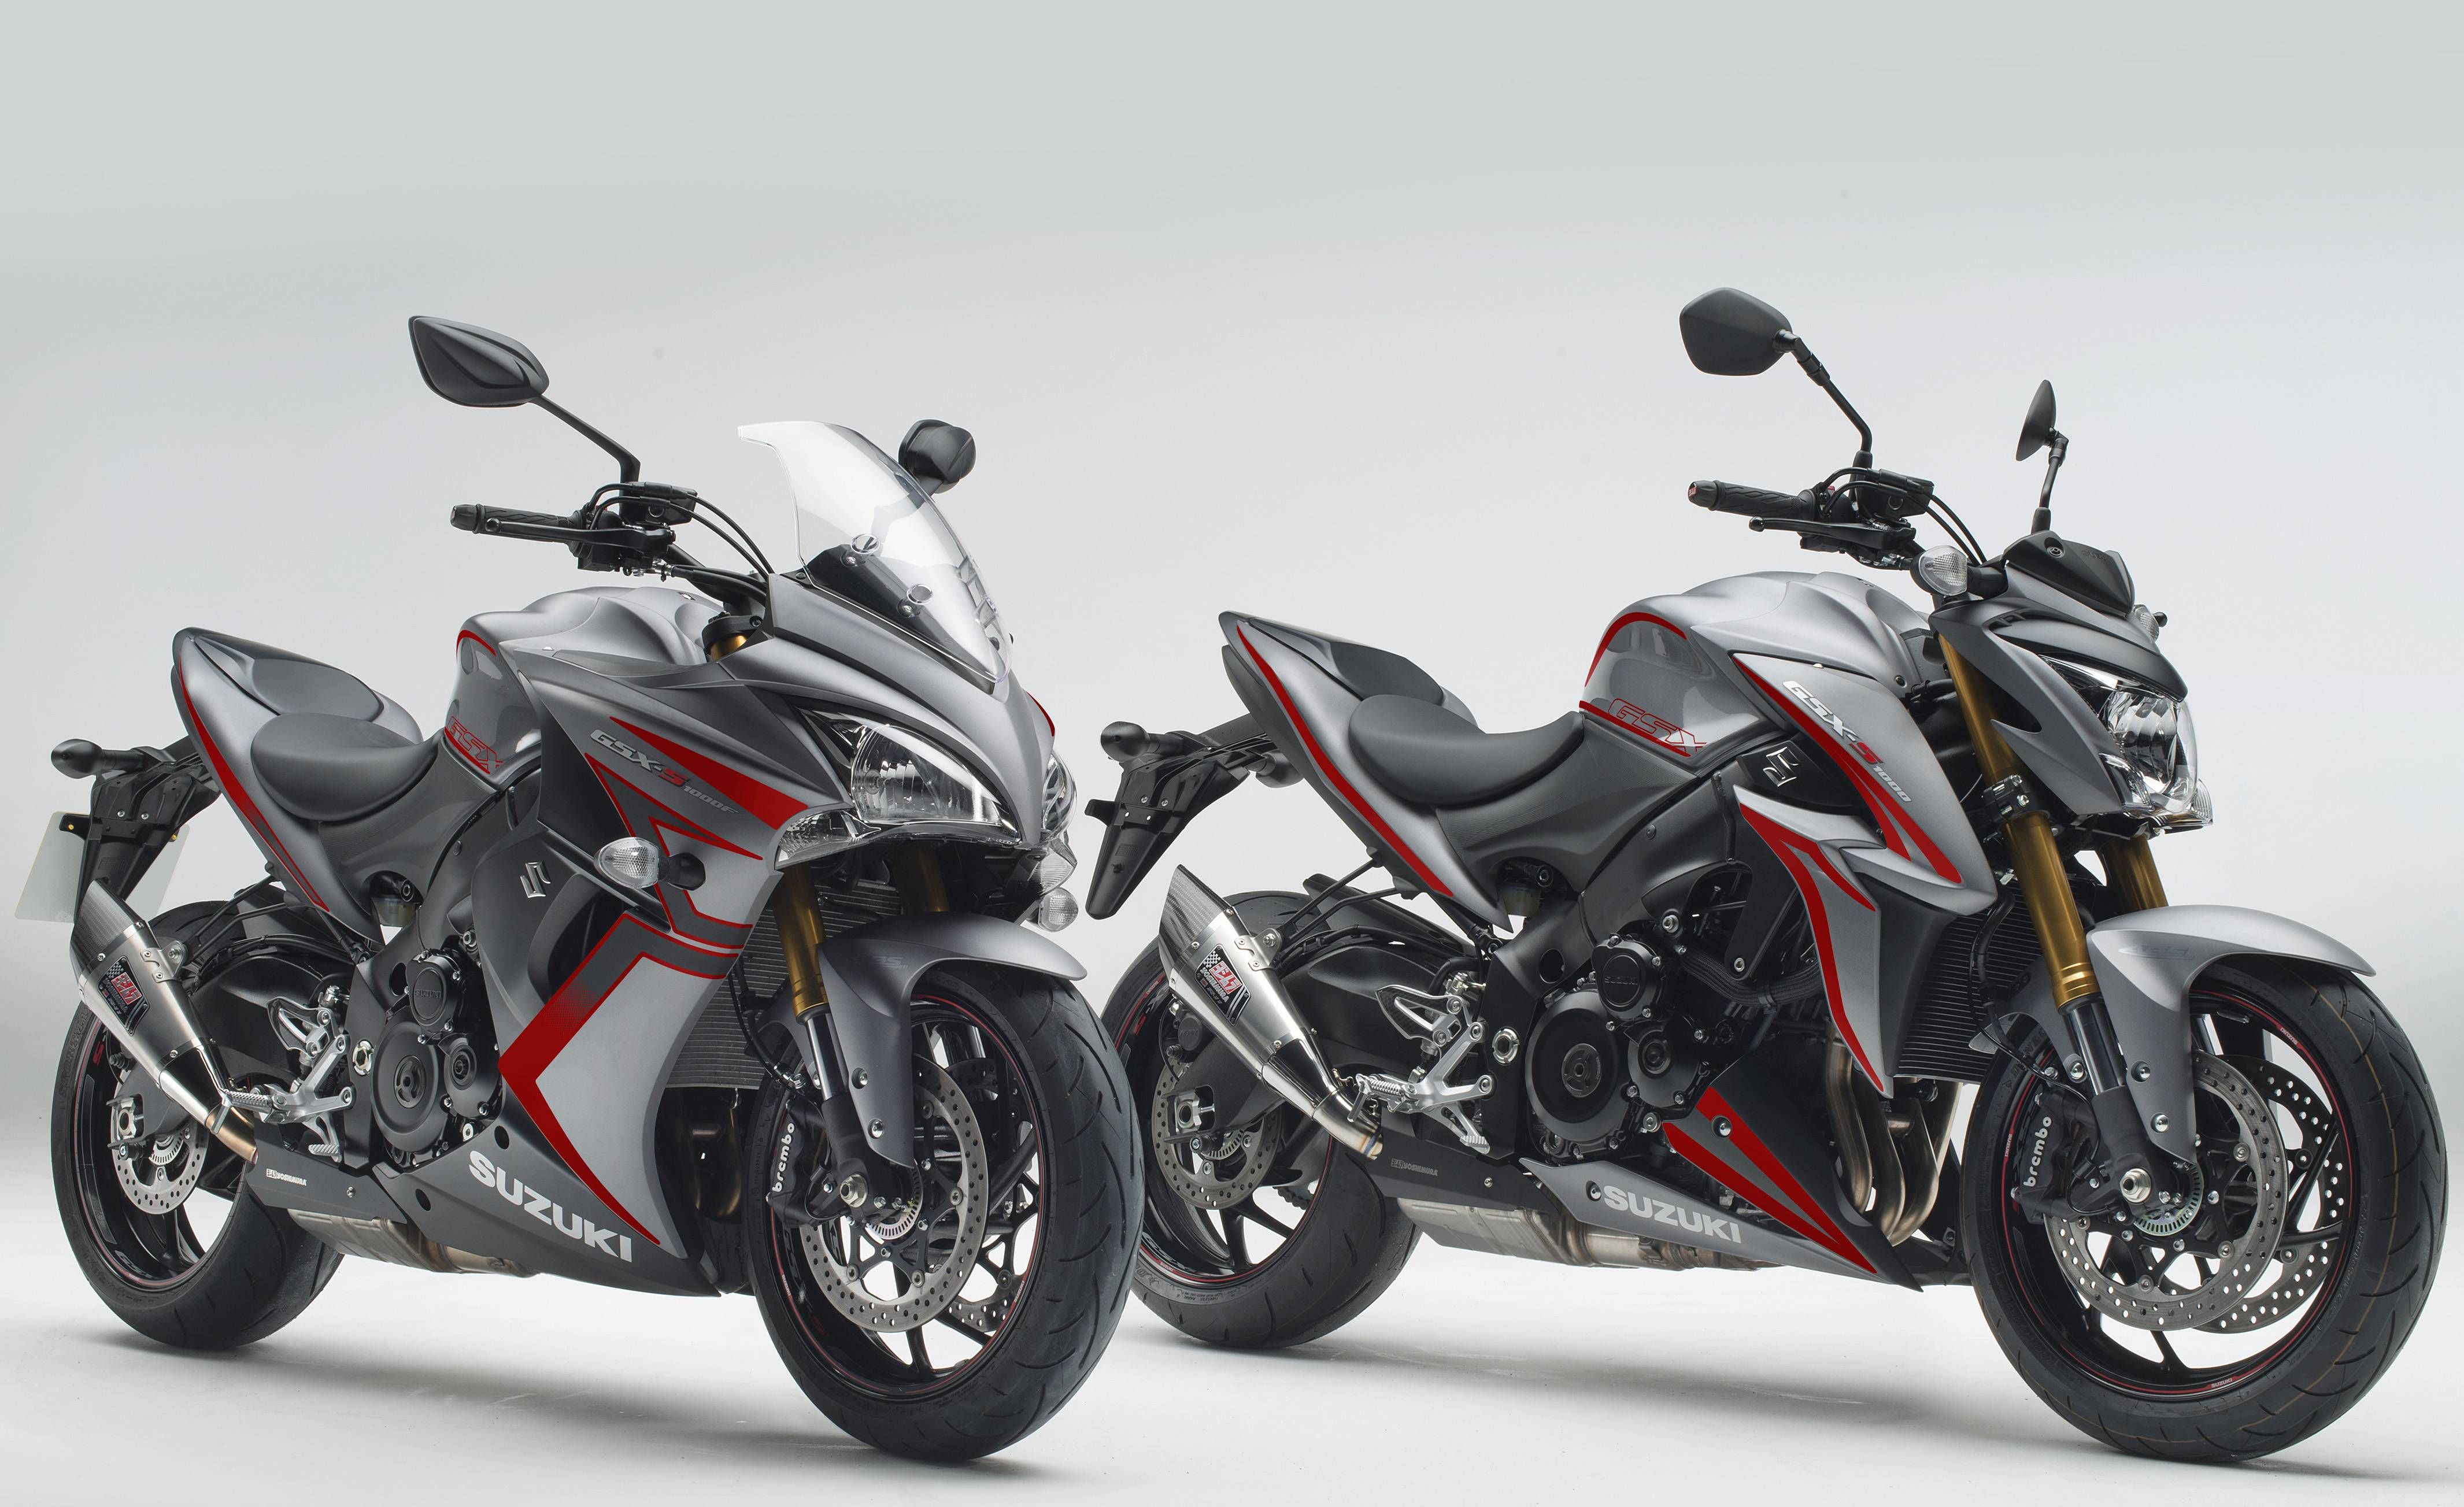 suzuki gsx s1000f gsx s1000 yoshimura special edition bikes announced in the uk the many. Black Bedroom Furniture Sets. Home Design Ideas